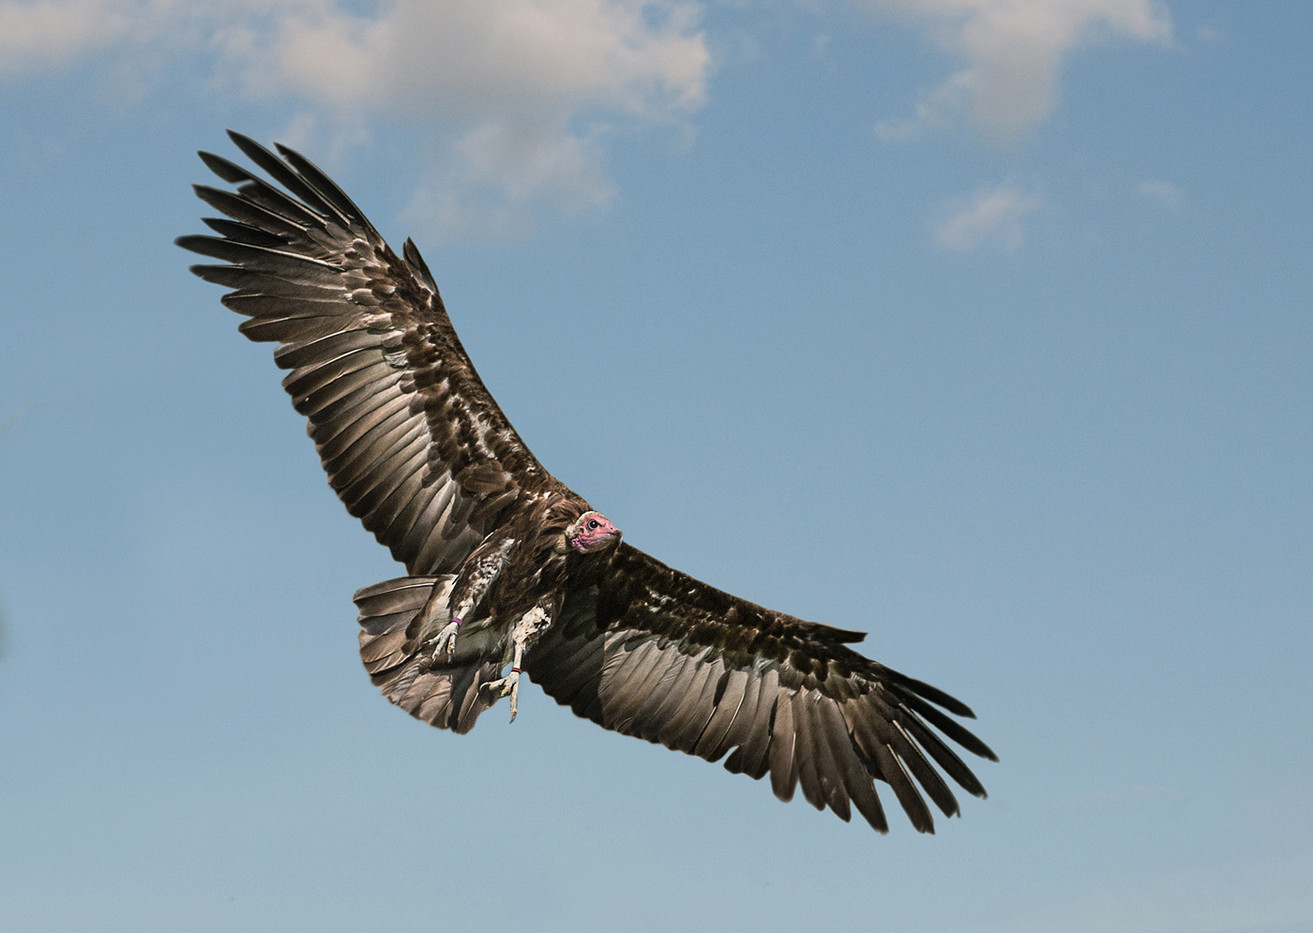 Group 1 18 VULTURE SOARING by Pam Sherren